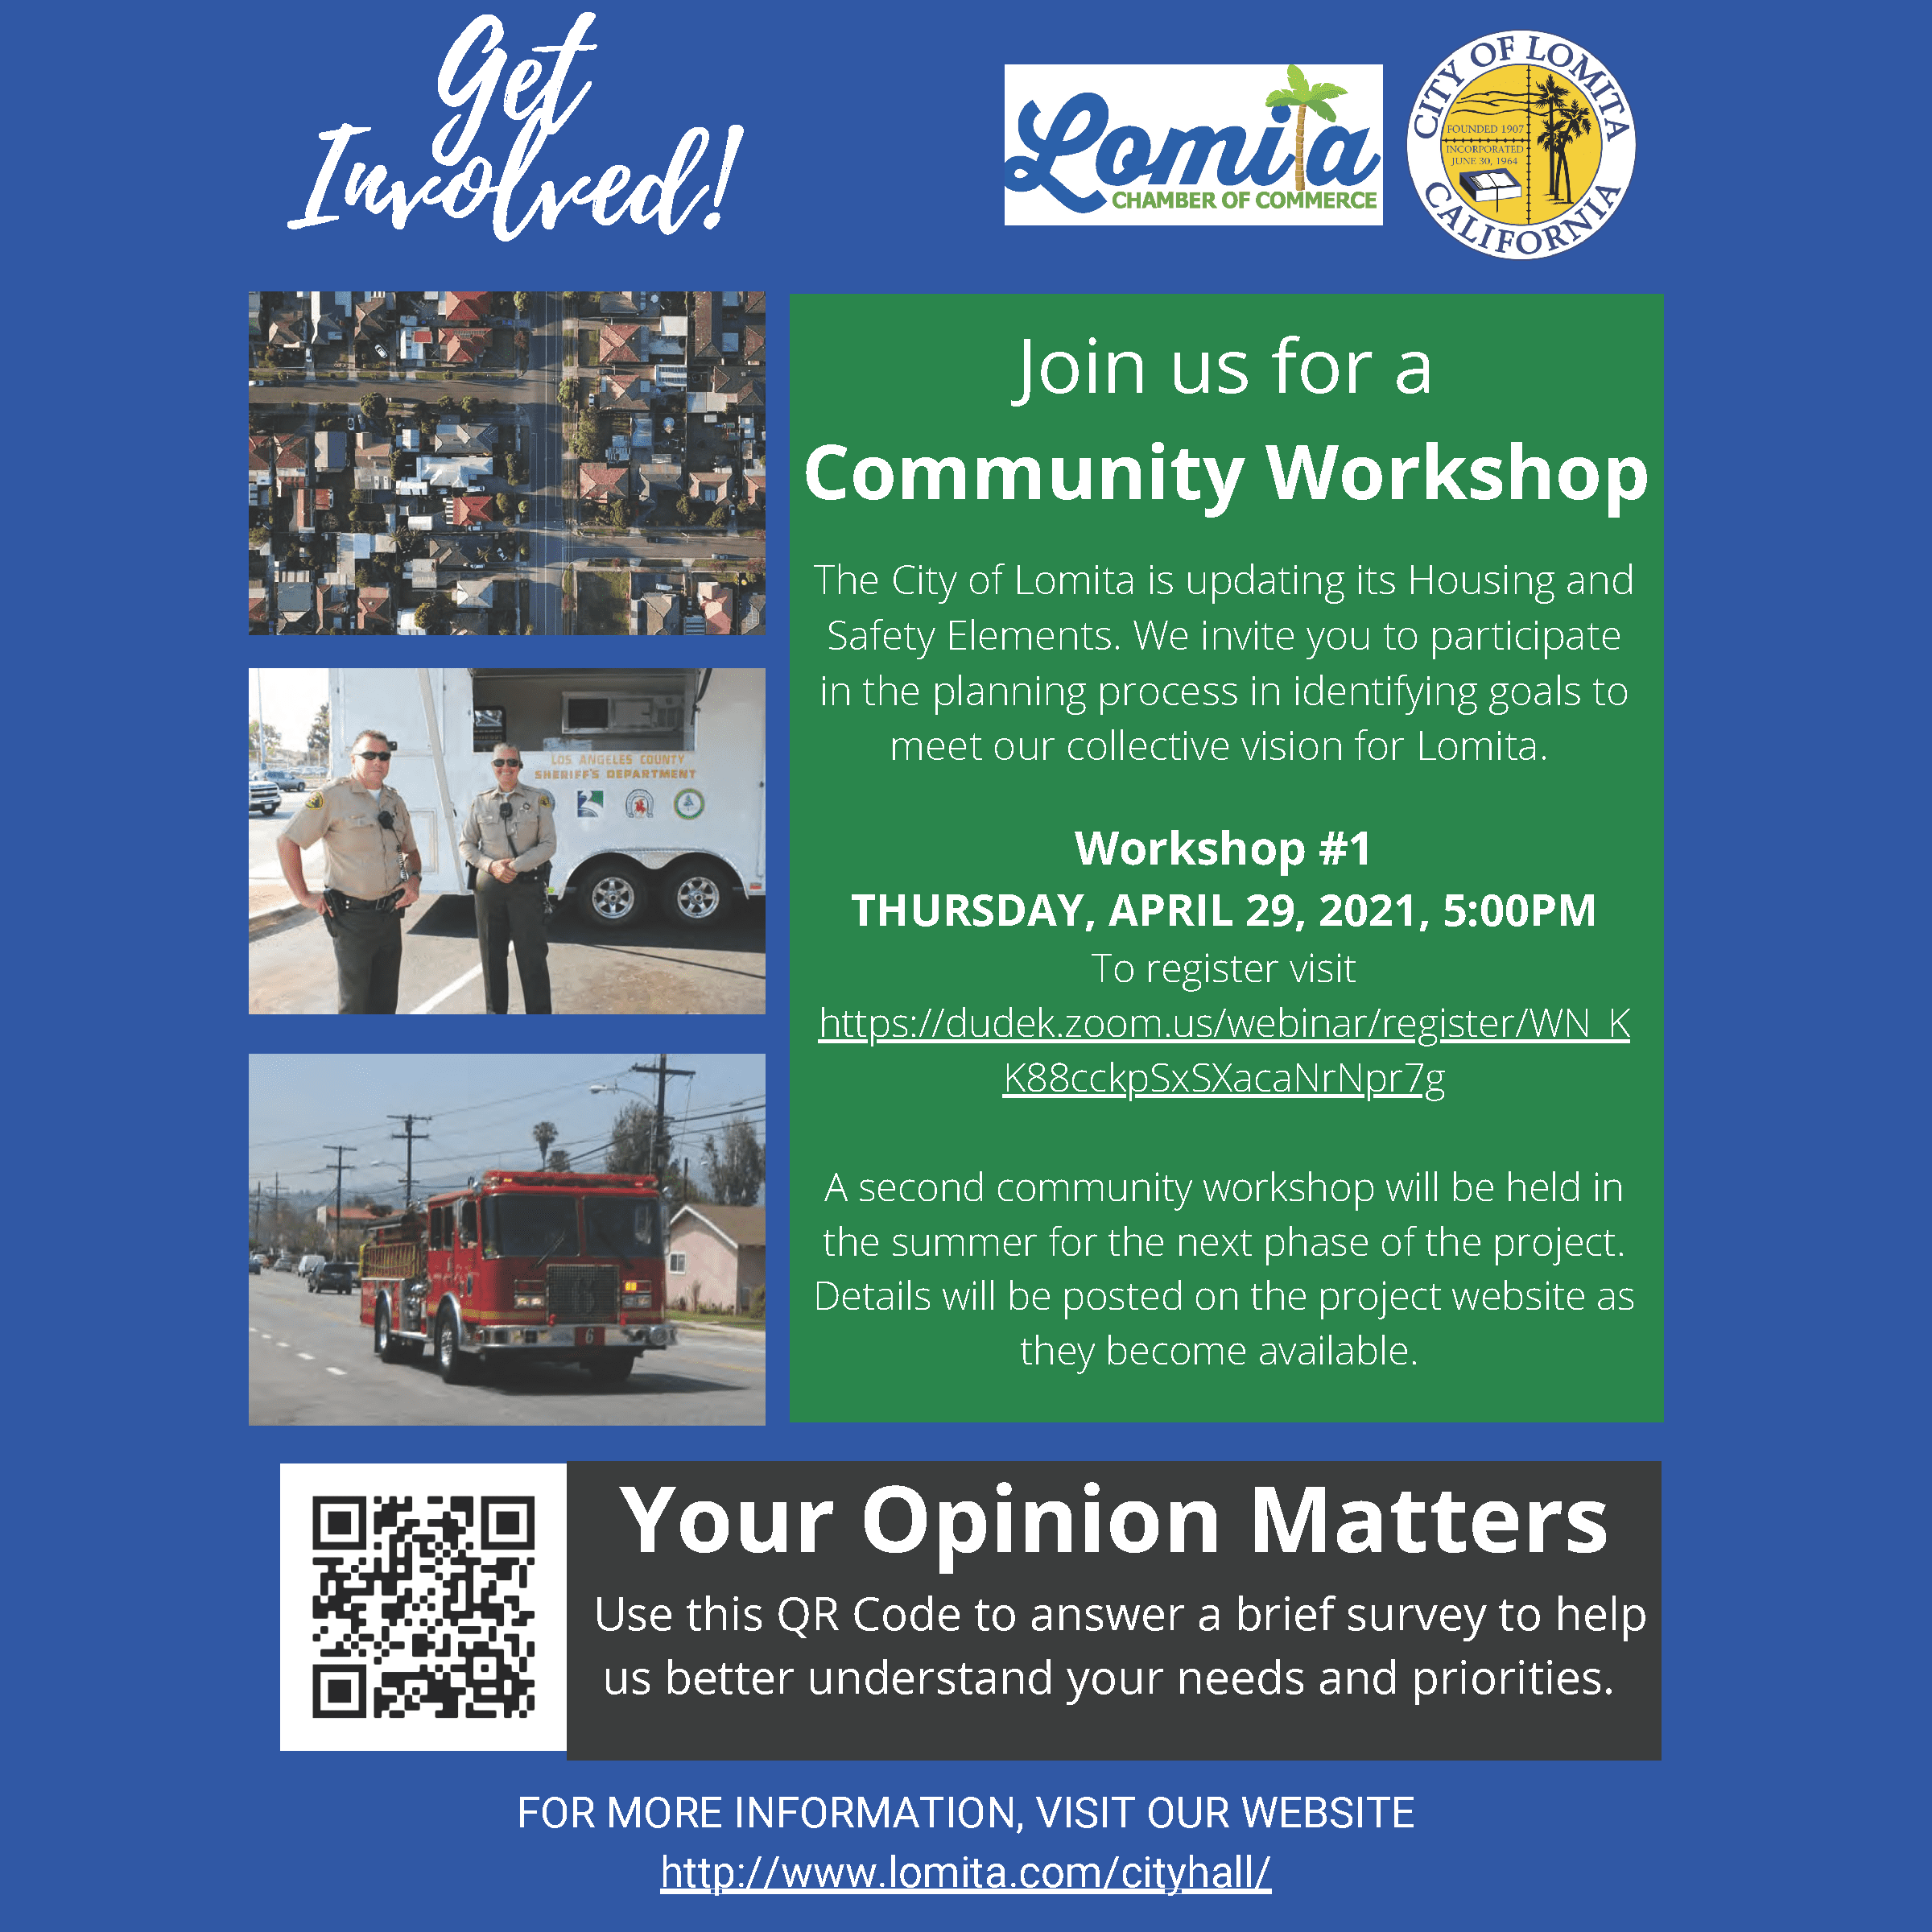 Get Involved! Survey and Workshop 1 flyer for SM